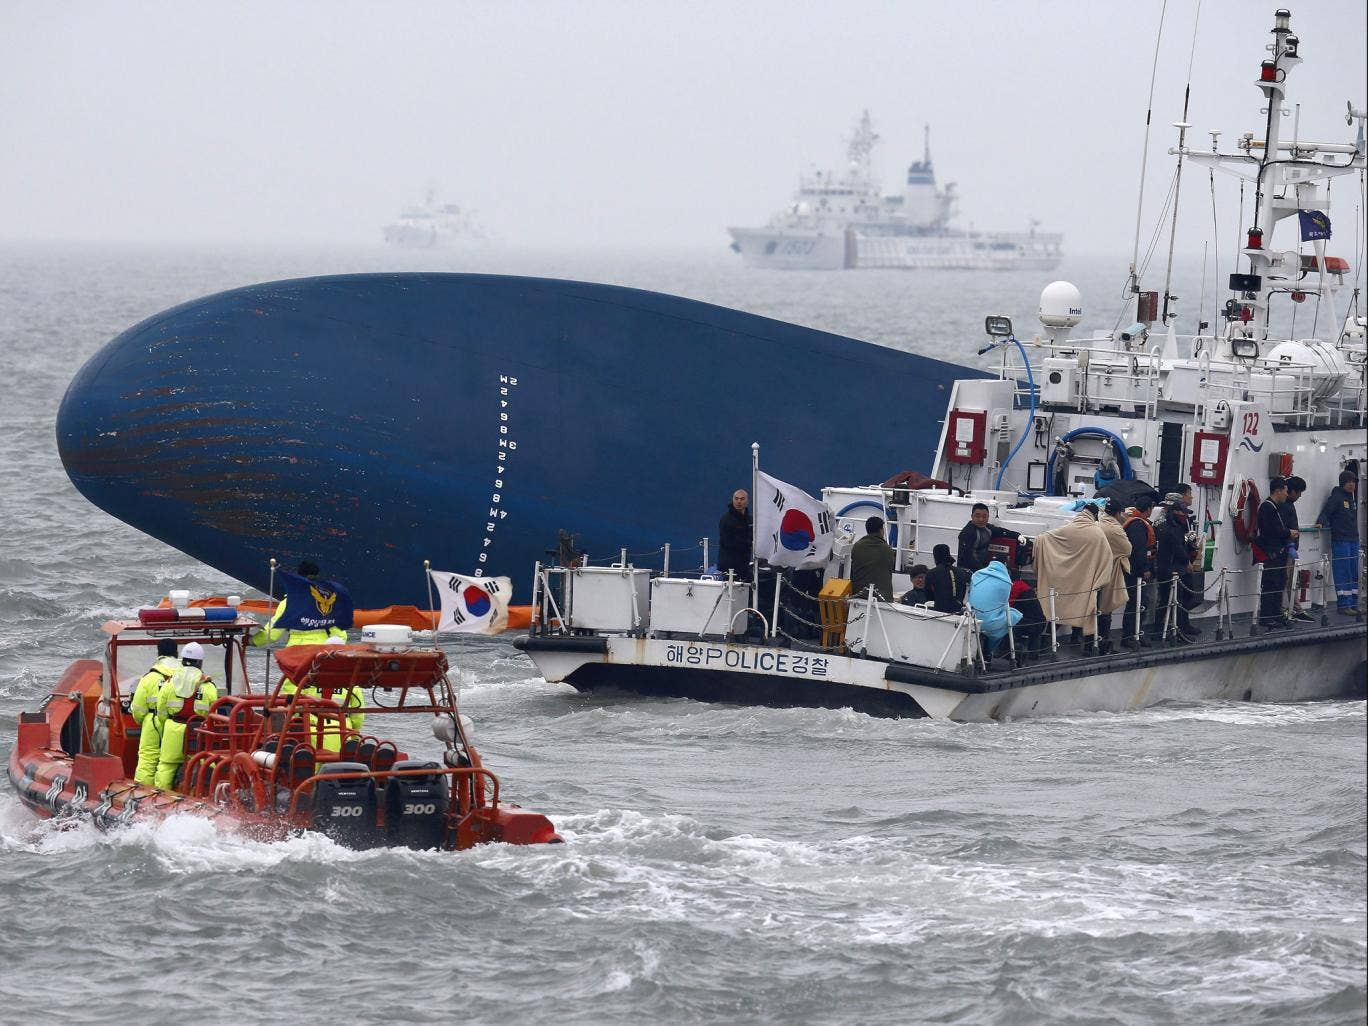 A view of the rescue operation underway after the ferry Sewol sank in waters off Jindo Island in the southwestern province of South Jeolla